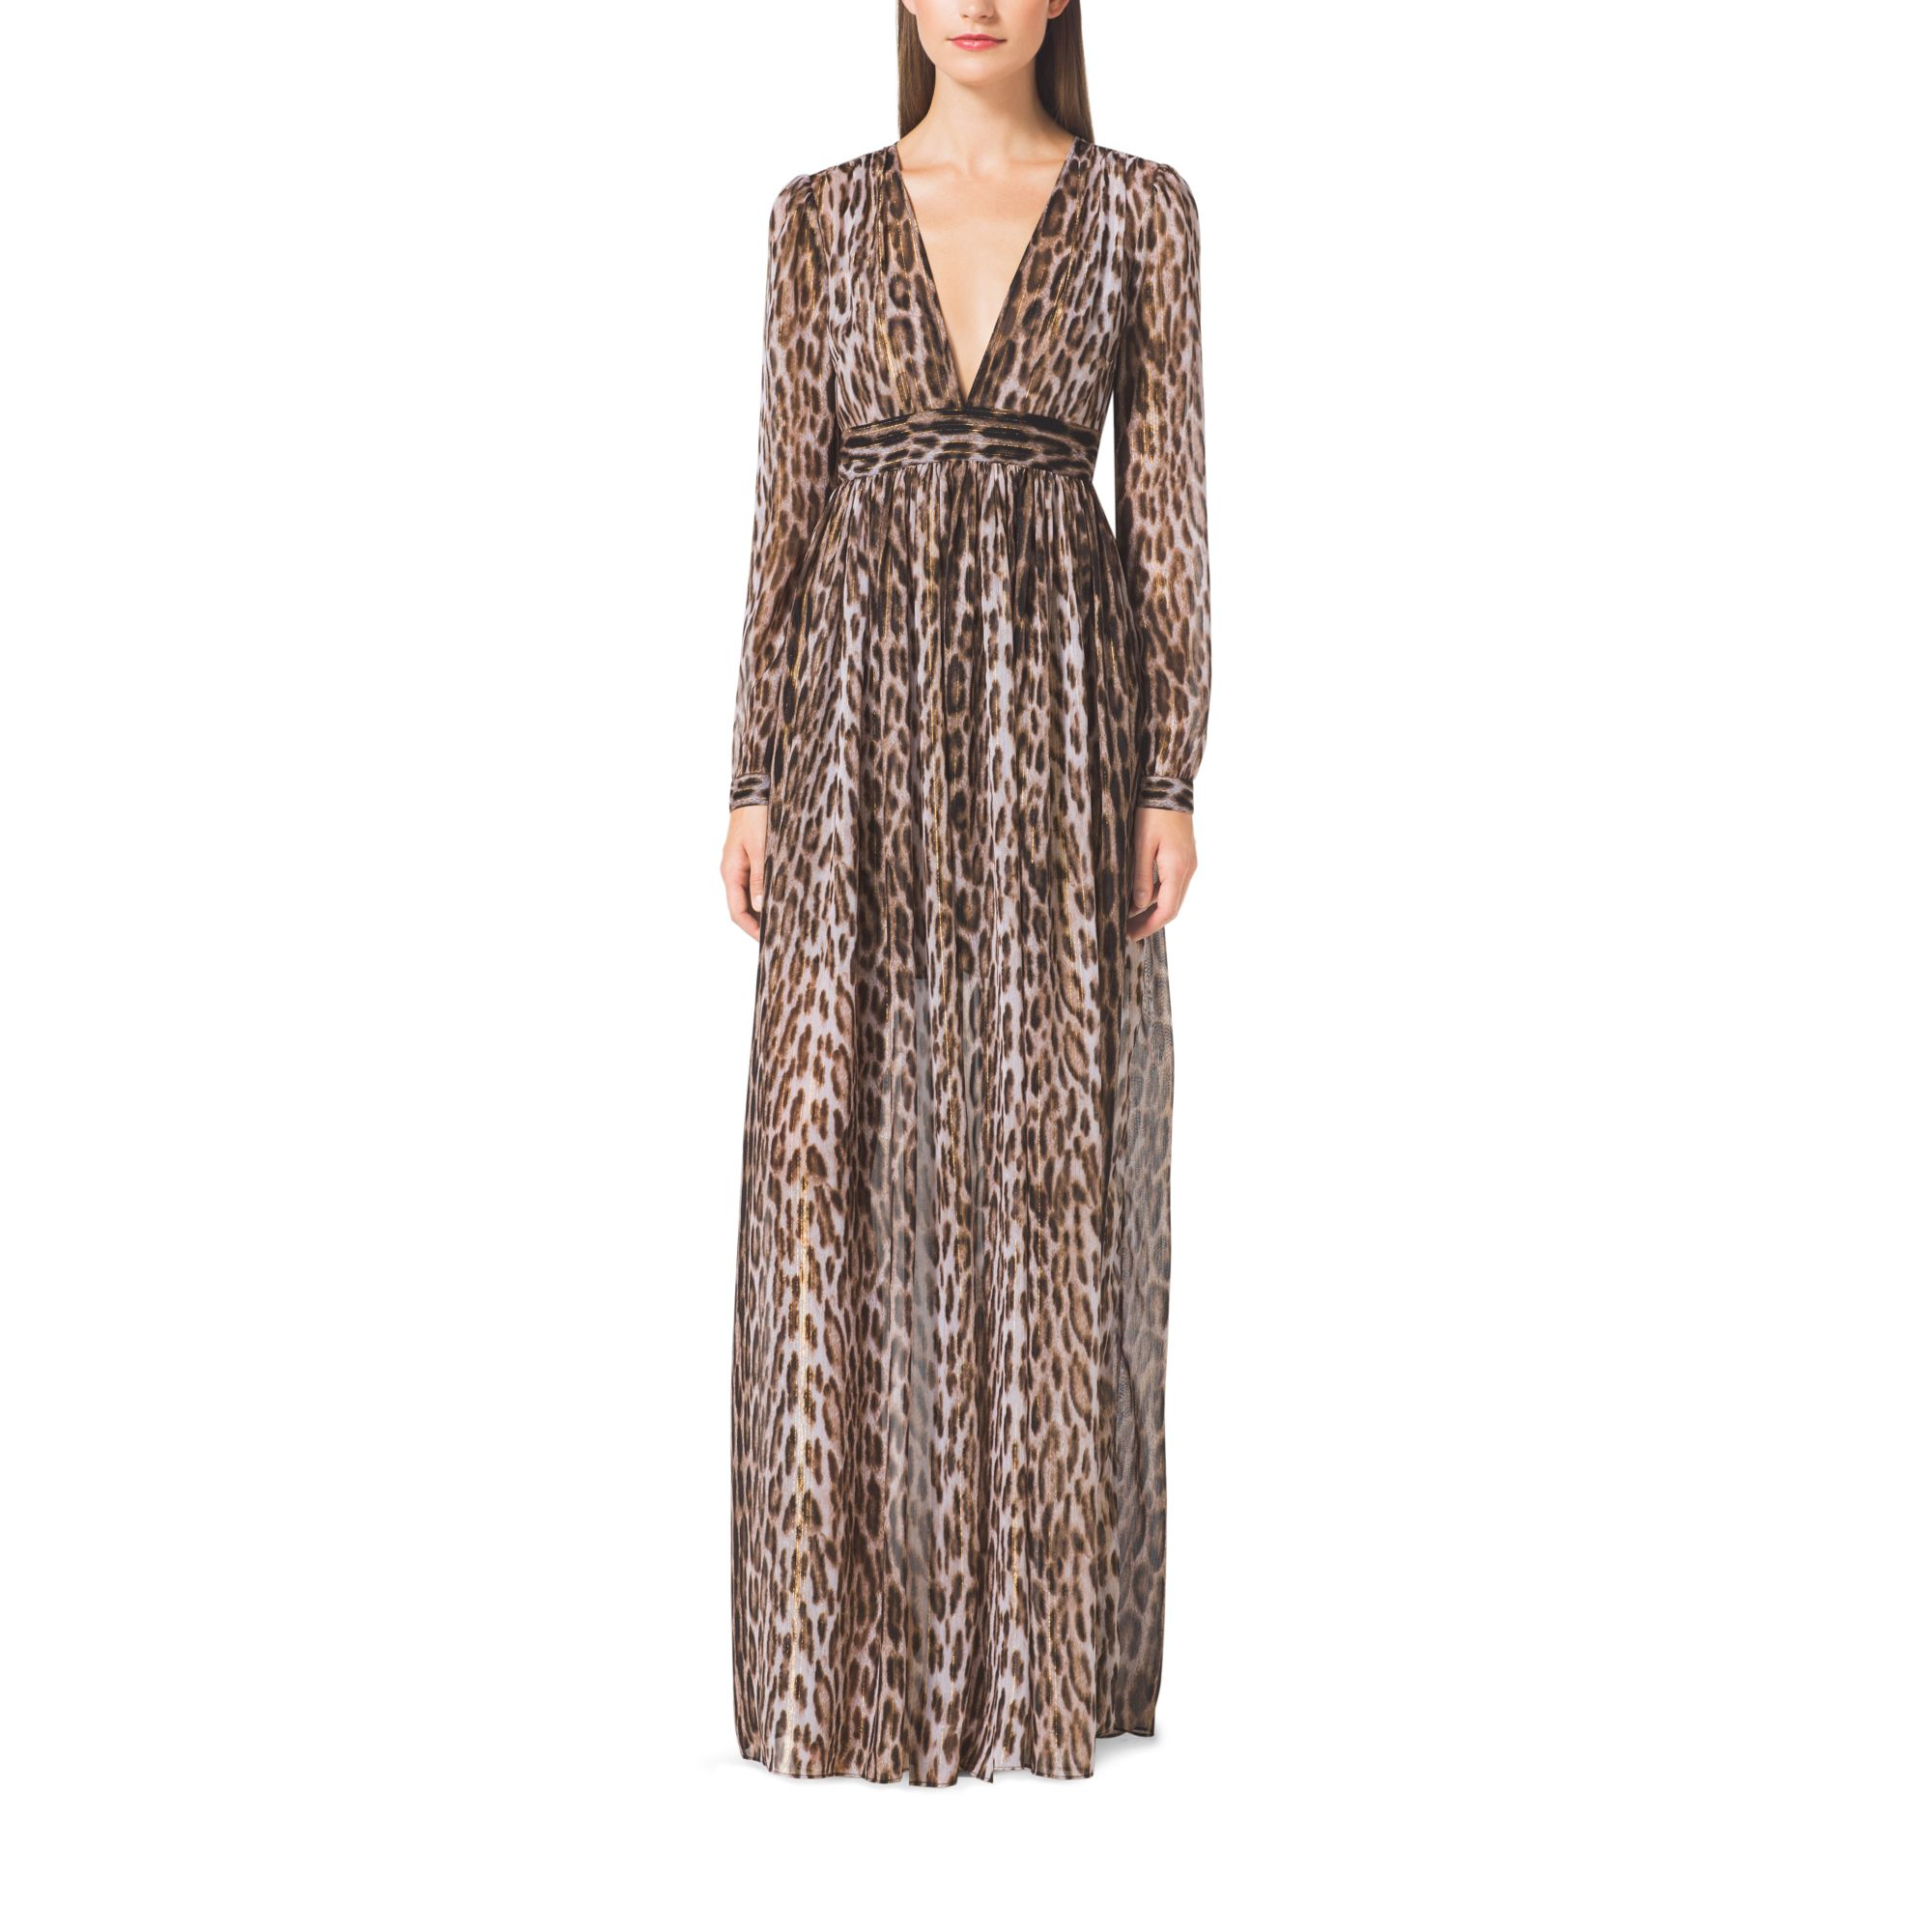 Lyst Michael Kors Leopard Print Maxi Dress In Brown